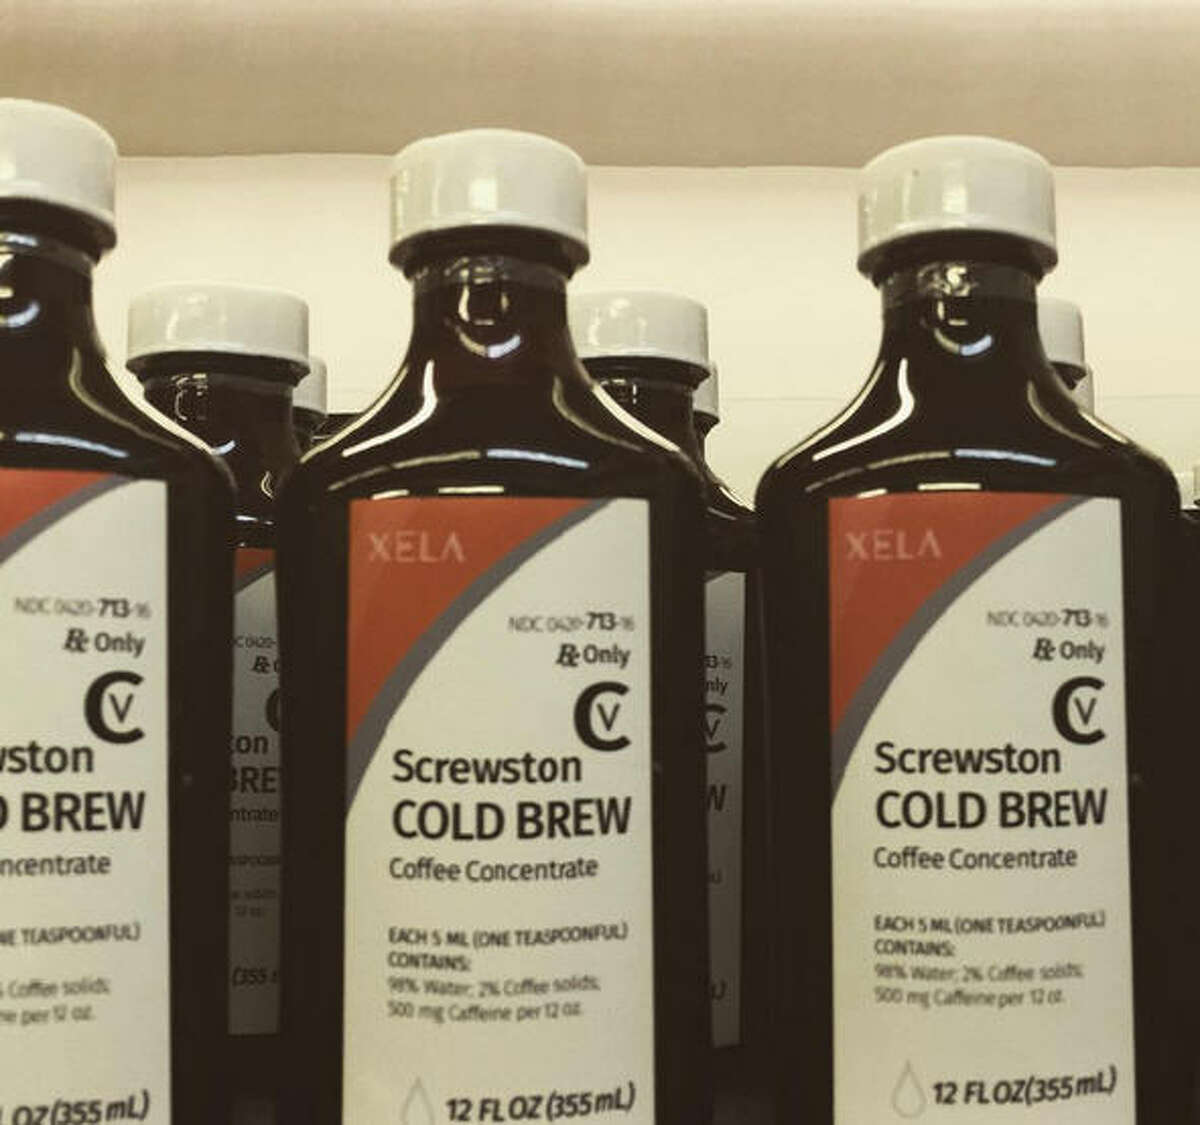 An upstart Houston coffee company is evoking the spirit of DJ Screw and other Houston rap legends with its new bottle of cold brew concentrate. Xela Coffee Roasters is packaging its cold brew inside cough syrup bottles with labeling that looks not unlike those used for Promethazine codeine cough syrup.